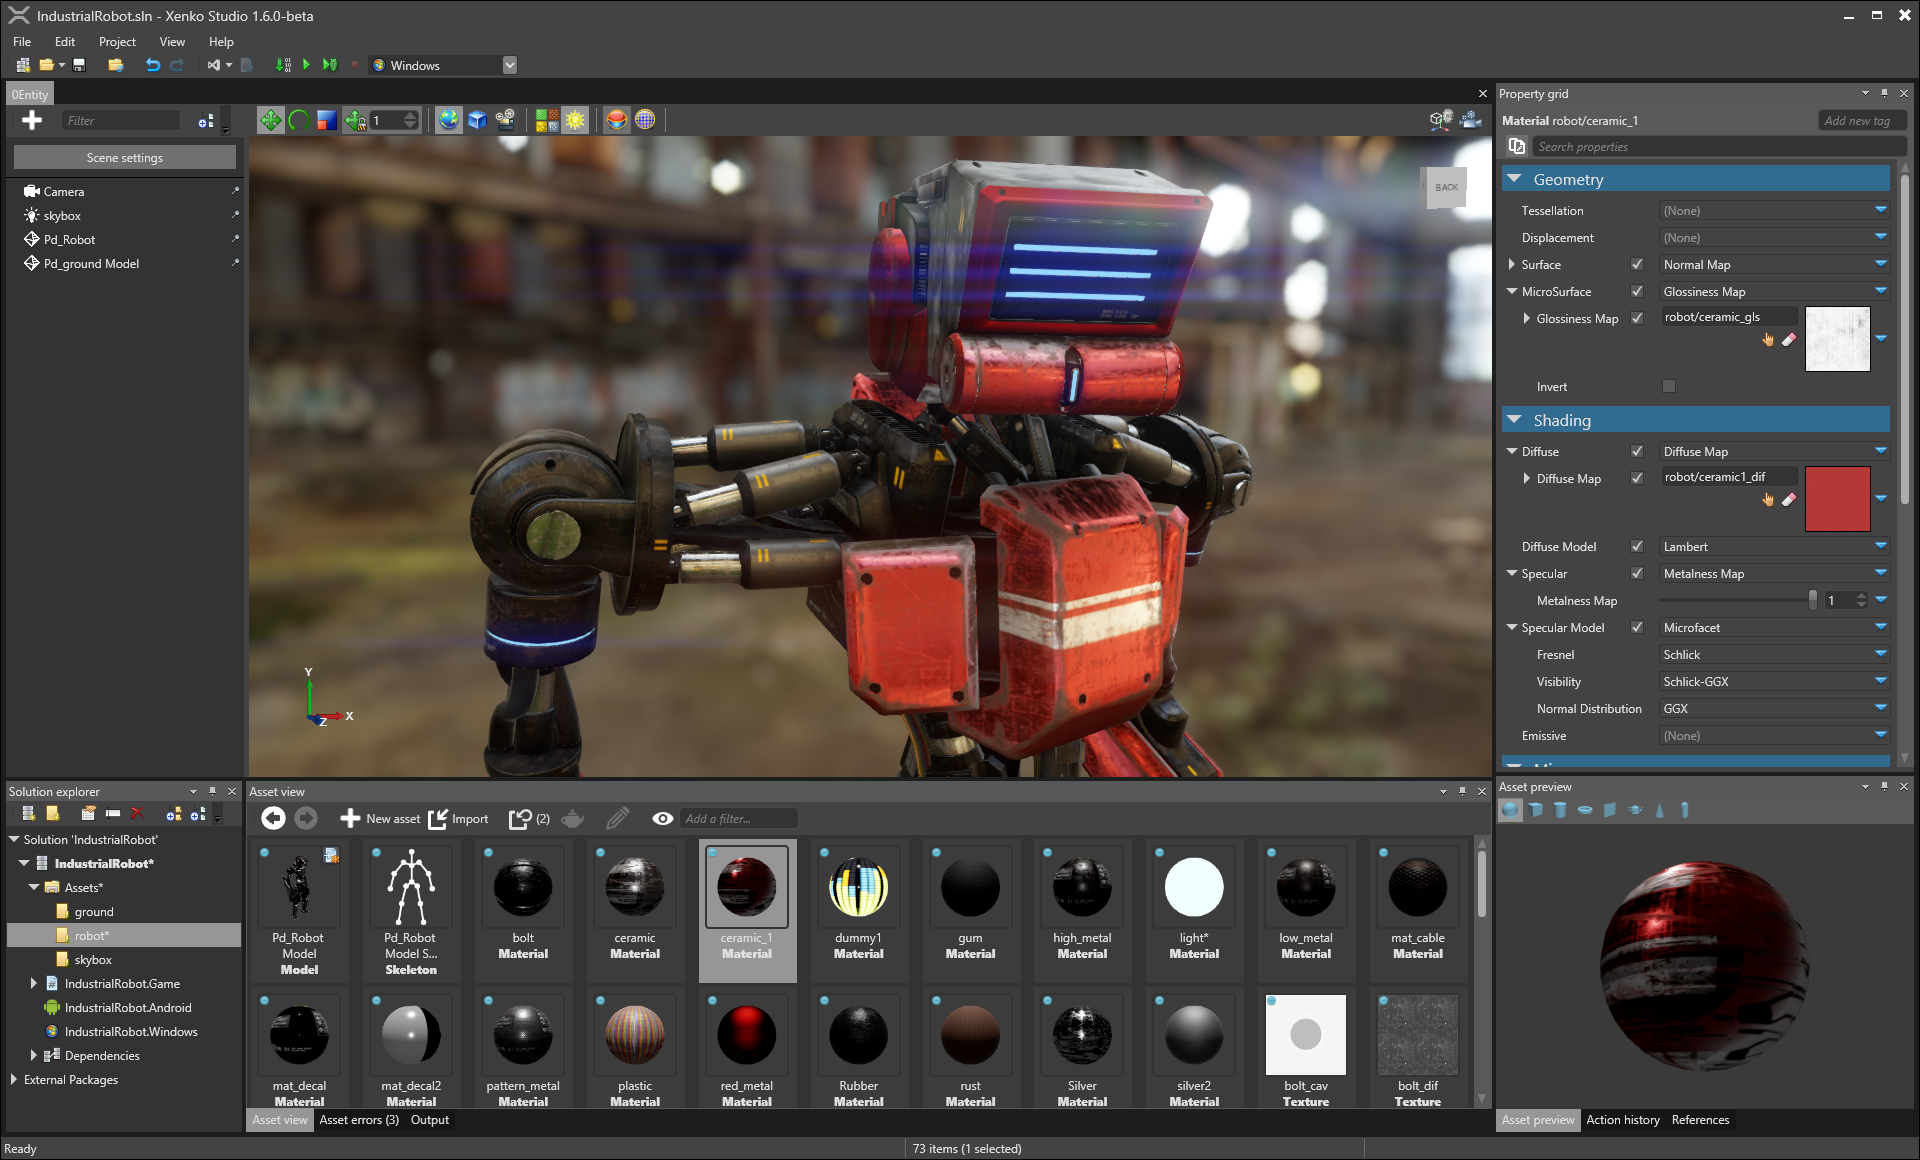 Silicon Studio to extend Xenko, C# open source, game engine